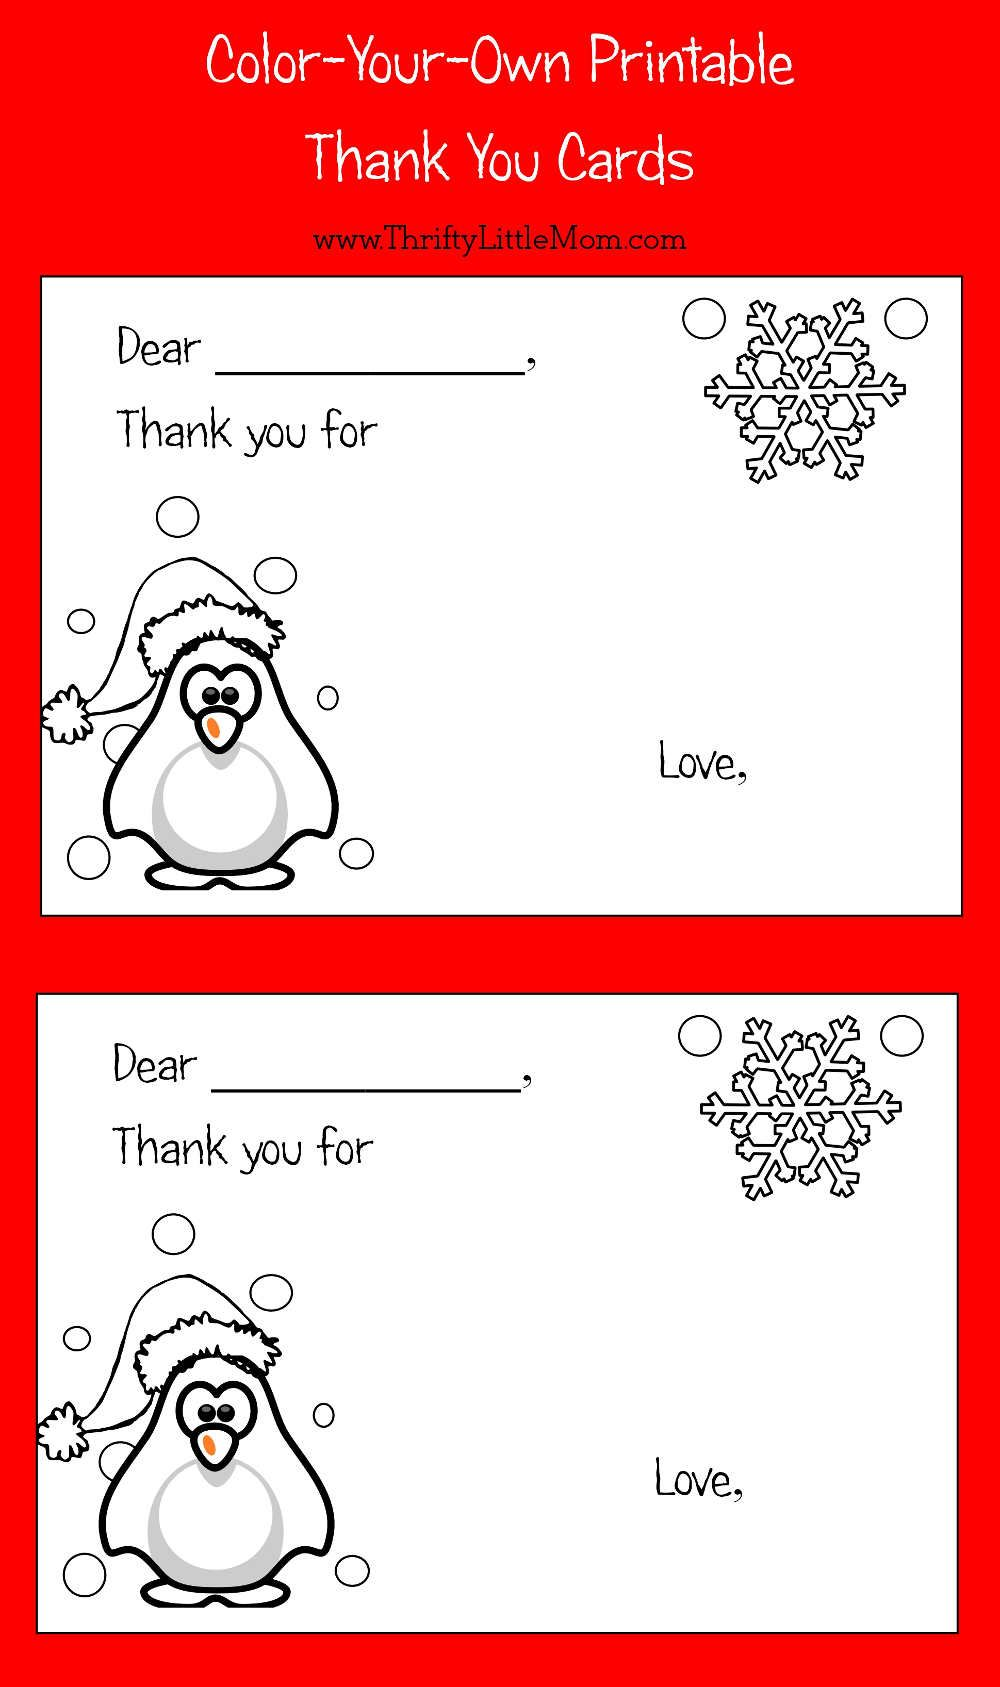 image about Free Printable Thank You Cards to Color named Coloration-Your-Particular Printable Thank Yourself Playing cards for Youngsters Thrifty